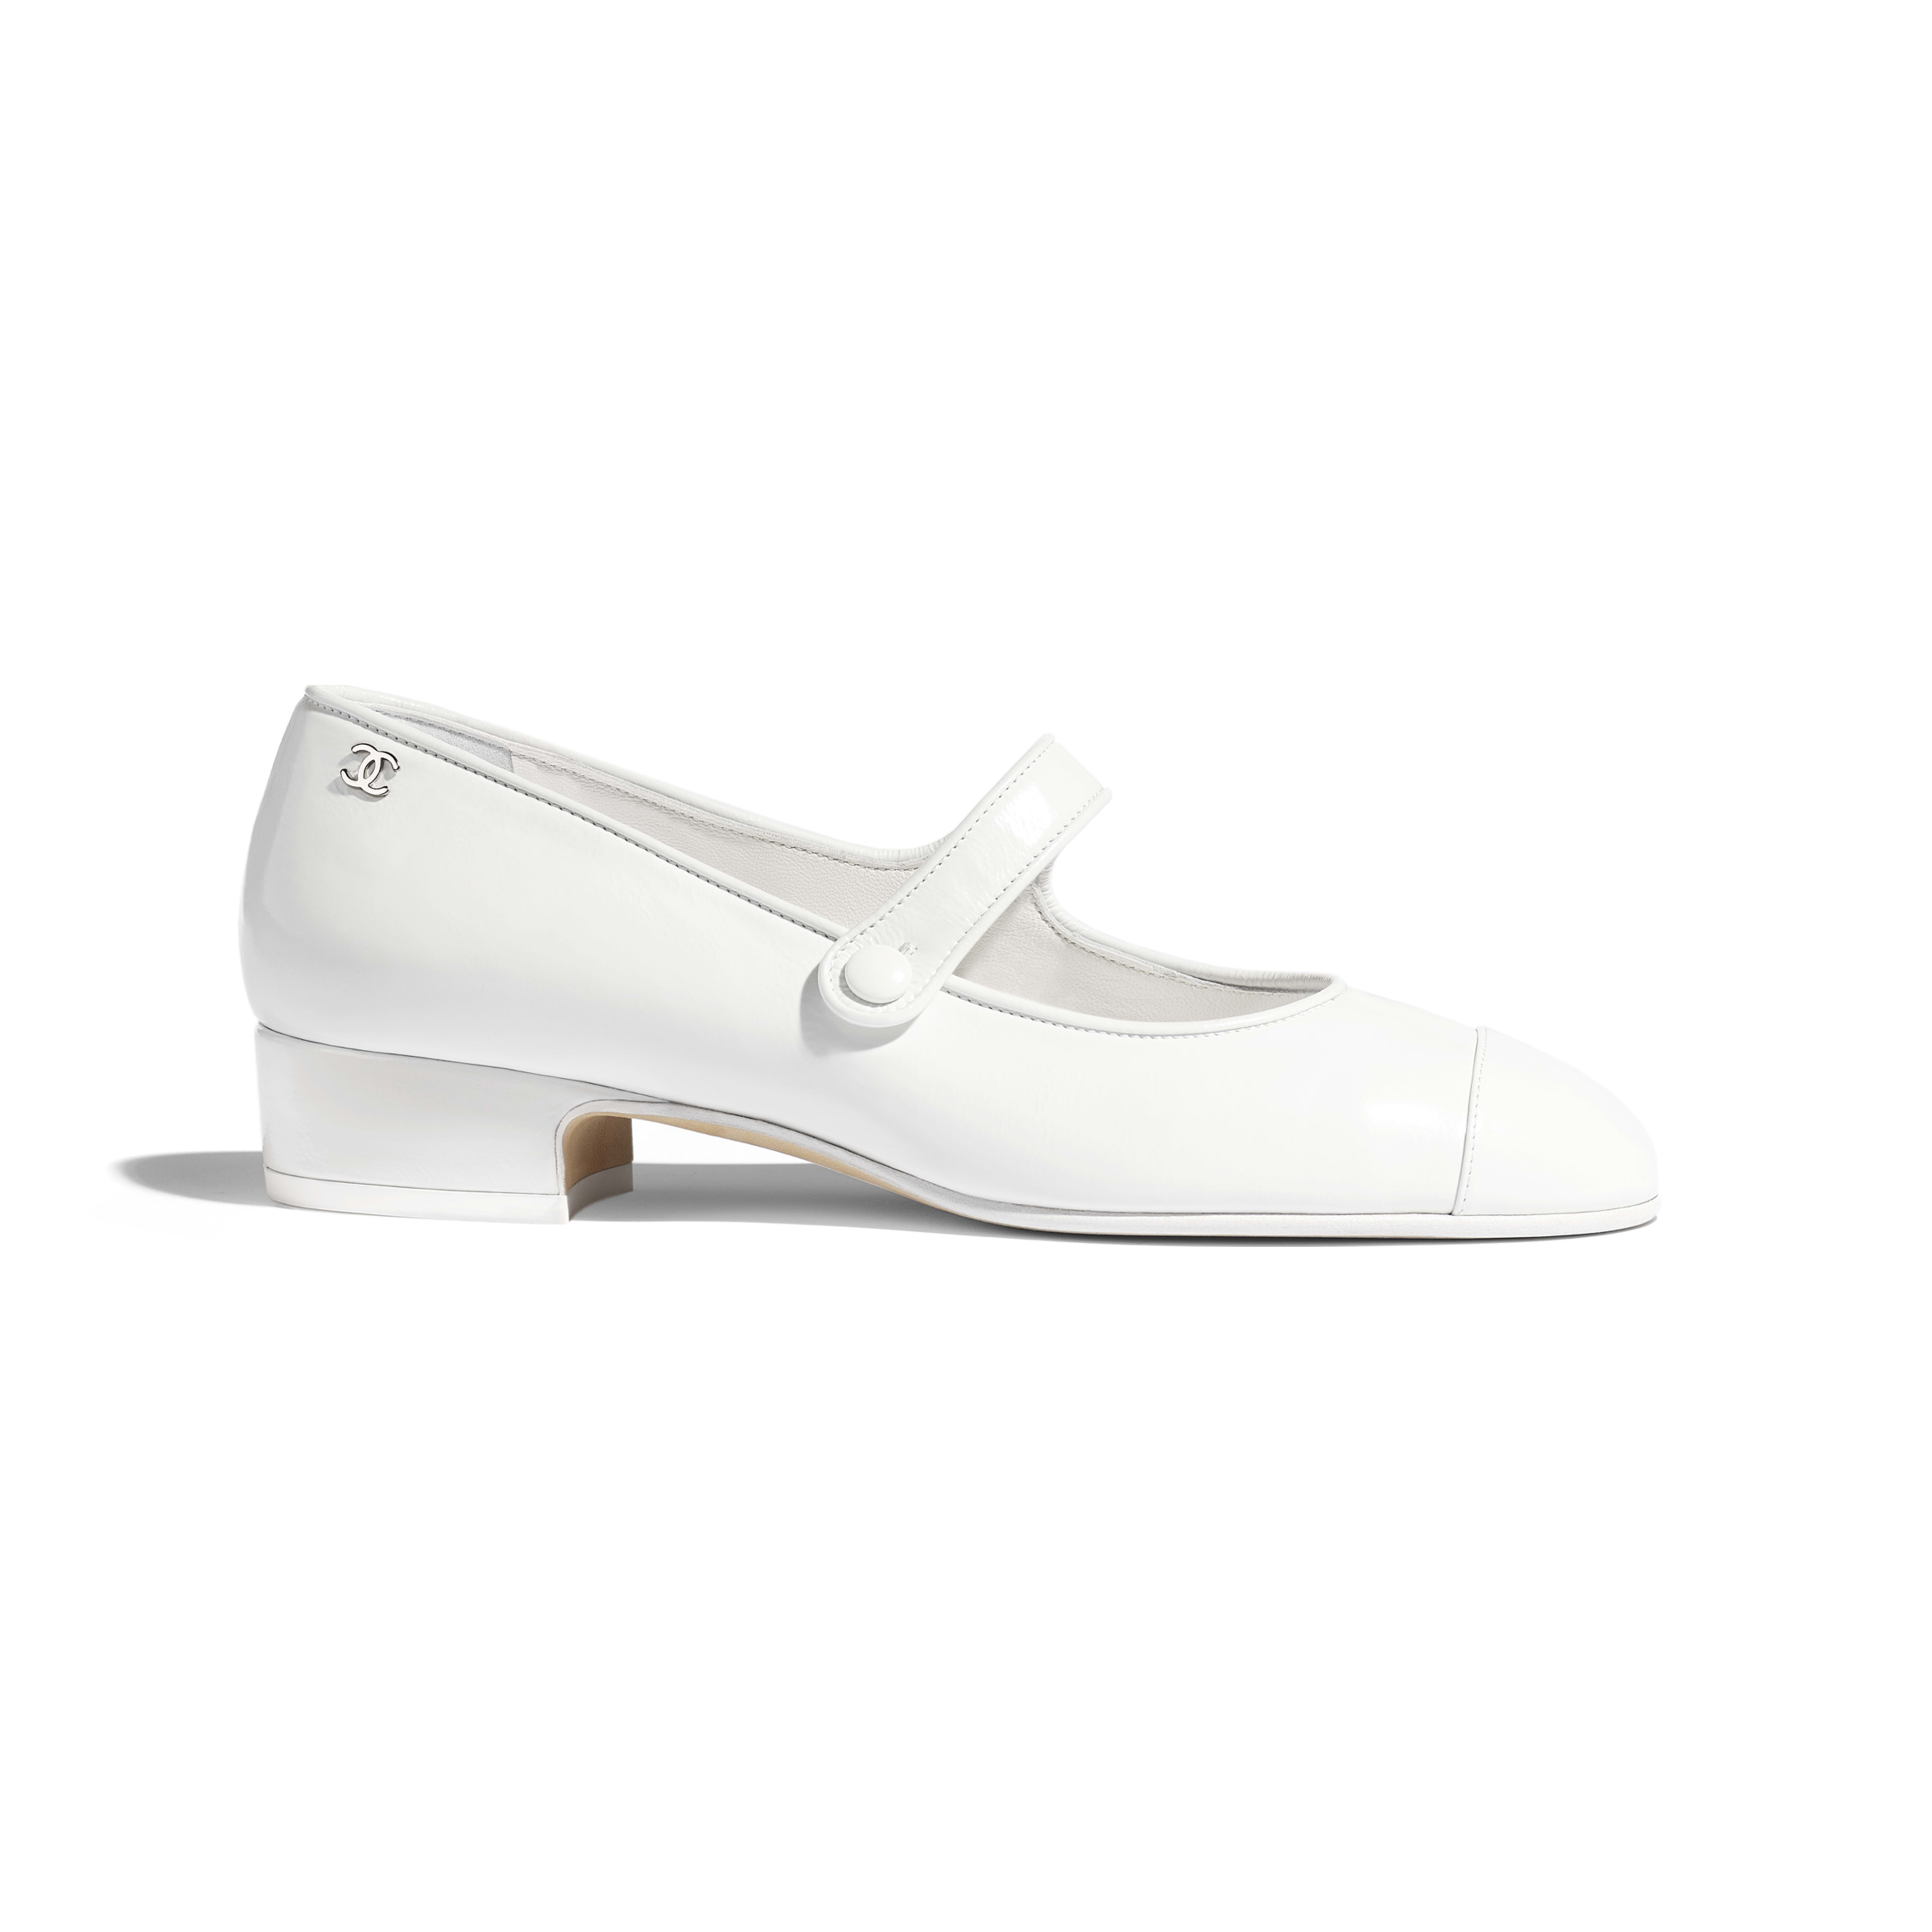 Mary Janes - White - Calfskin - Default view - see full sized version